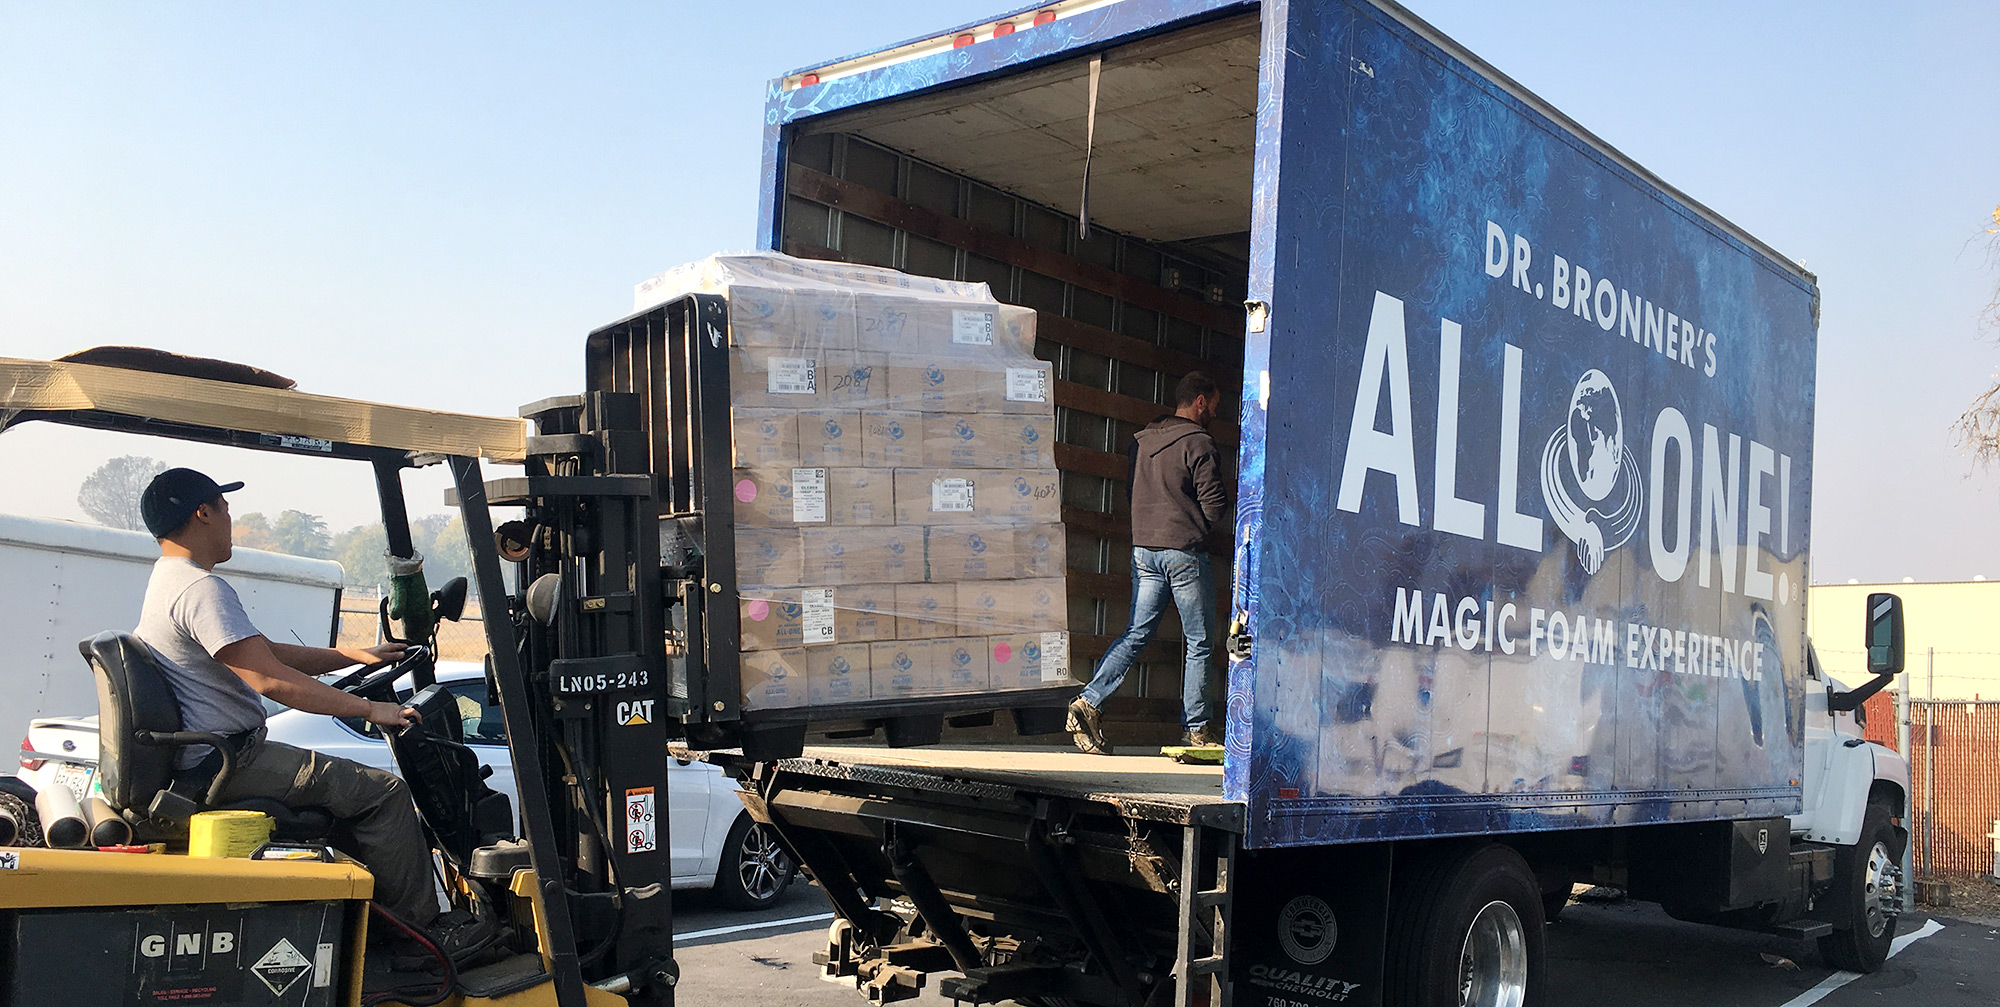 Uniting in Camp Fire Relief Efforts: Organic Valley and Dr. Bronner's Join Forces